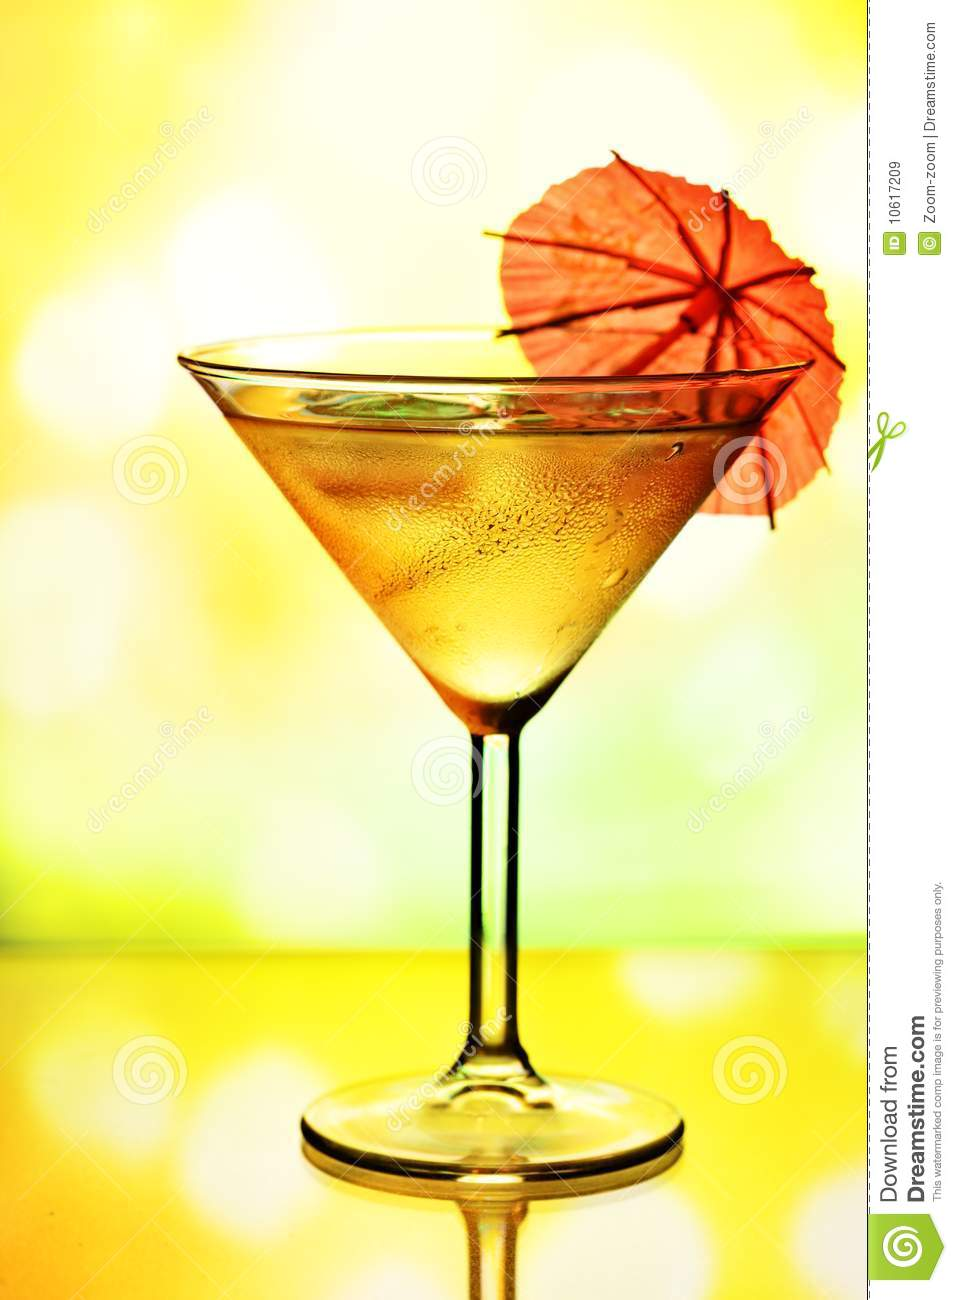 Cocktail glass with umbrella royalty free stock images for Christmas in a glass cocktail